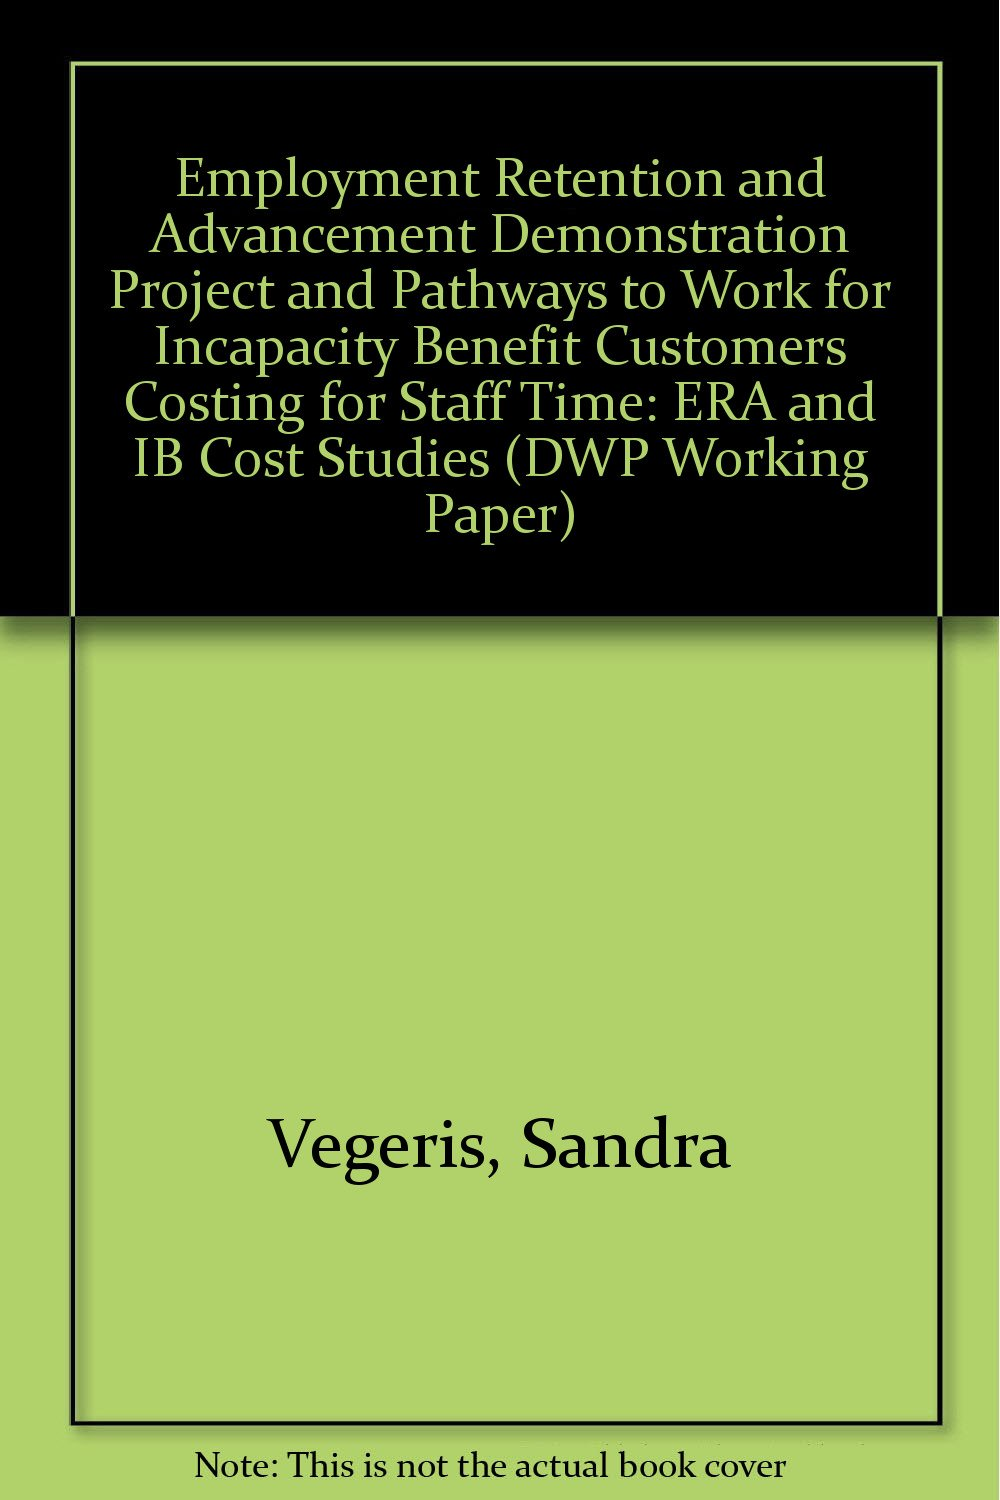 Download Employment Retention and Advancement Demonstration Project and Pathways to Work for Incapacity Benefit Customers Costing for Staff Time: ERA and IB Cost Studies (DWP Working Paper) pdf epub